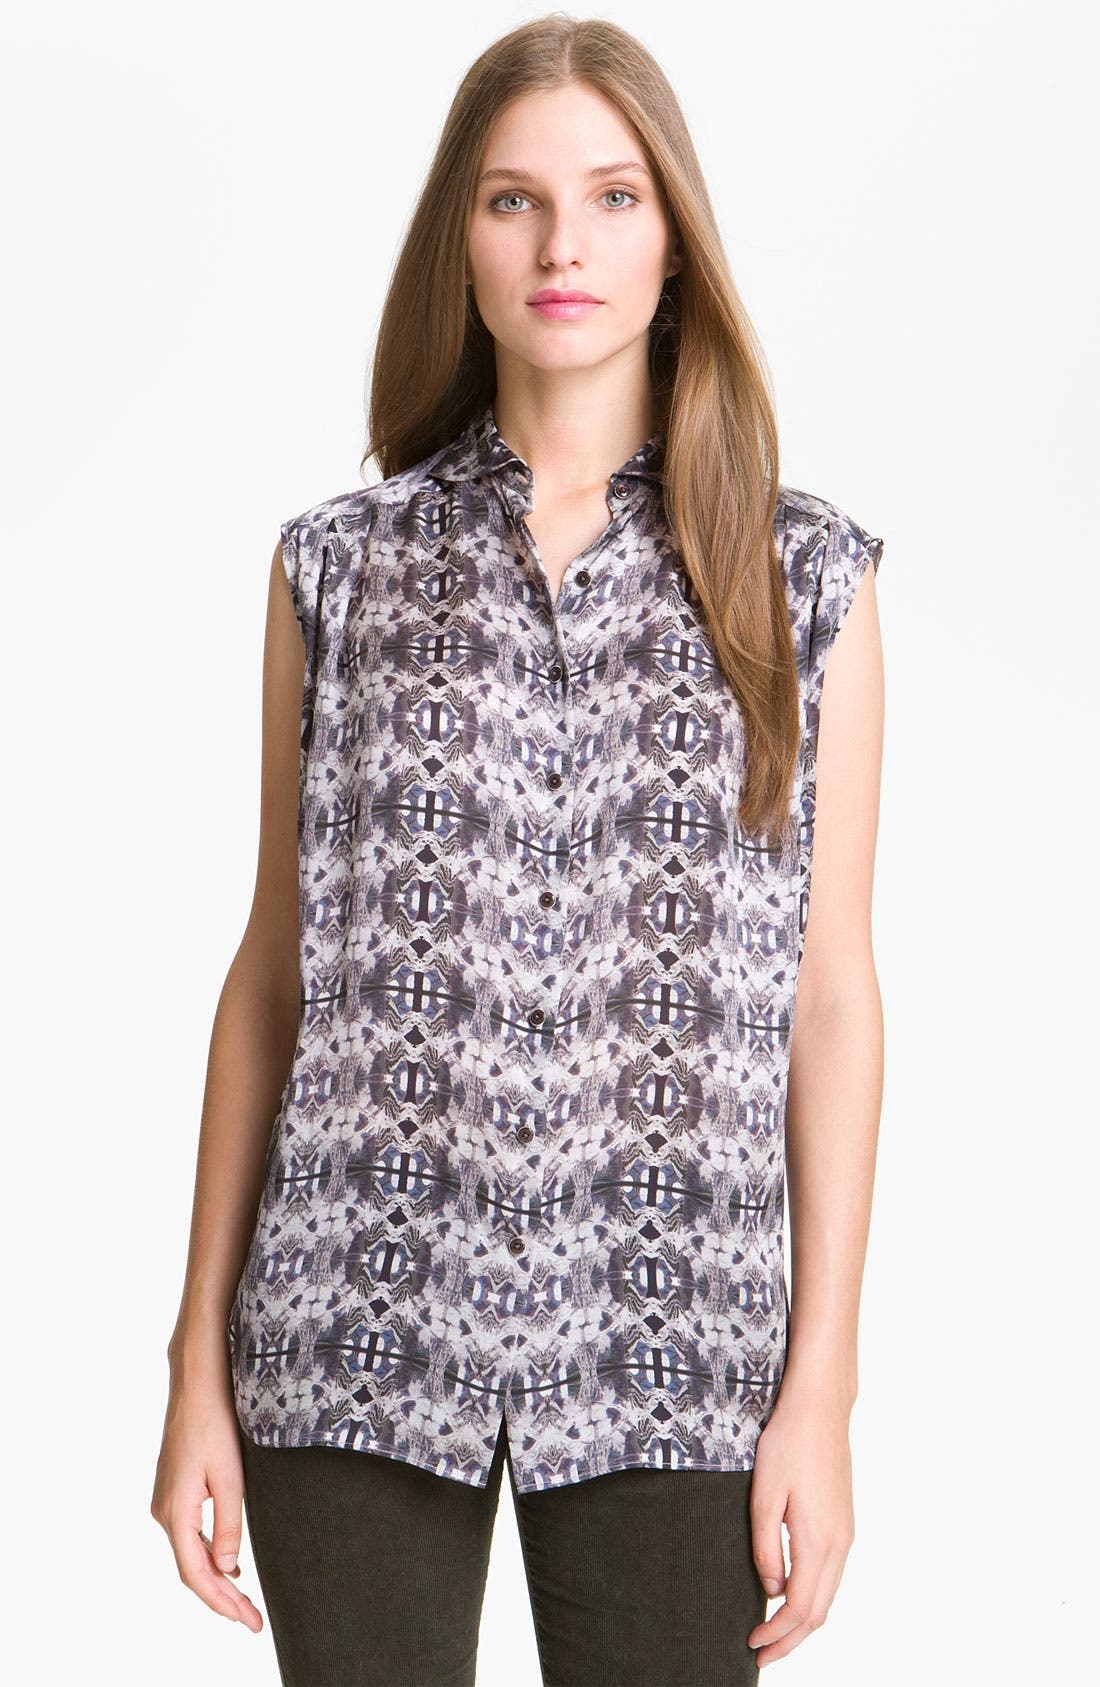 Main Image - Theyskens' Theory 'Braque Imoges' Blouse (Nordstrom Exclusive)